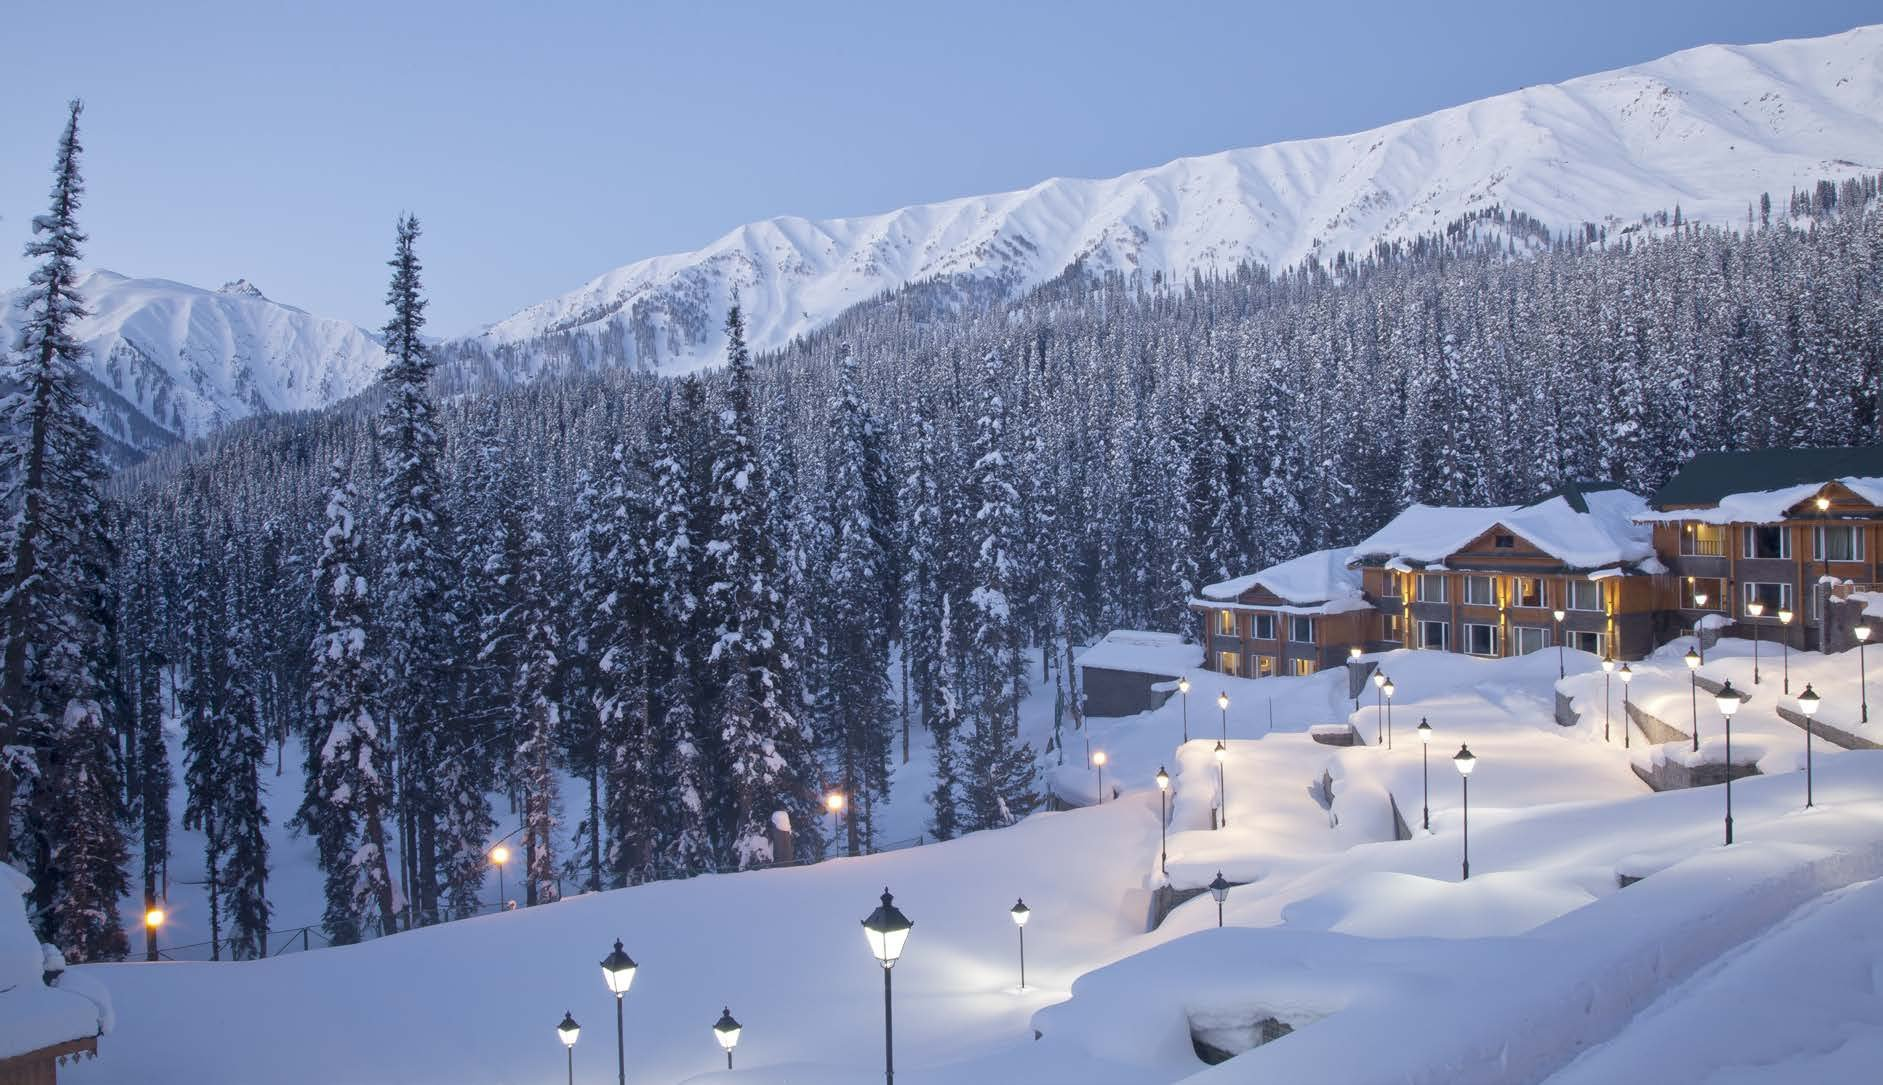 These 20 Winter Destinations In India Will Make You Fall In Love With The Snow